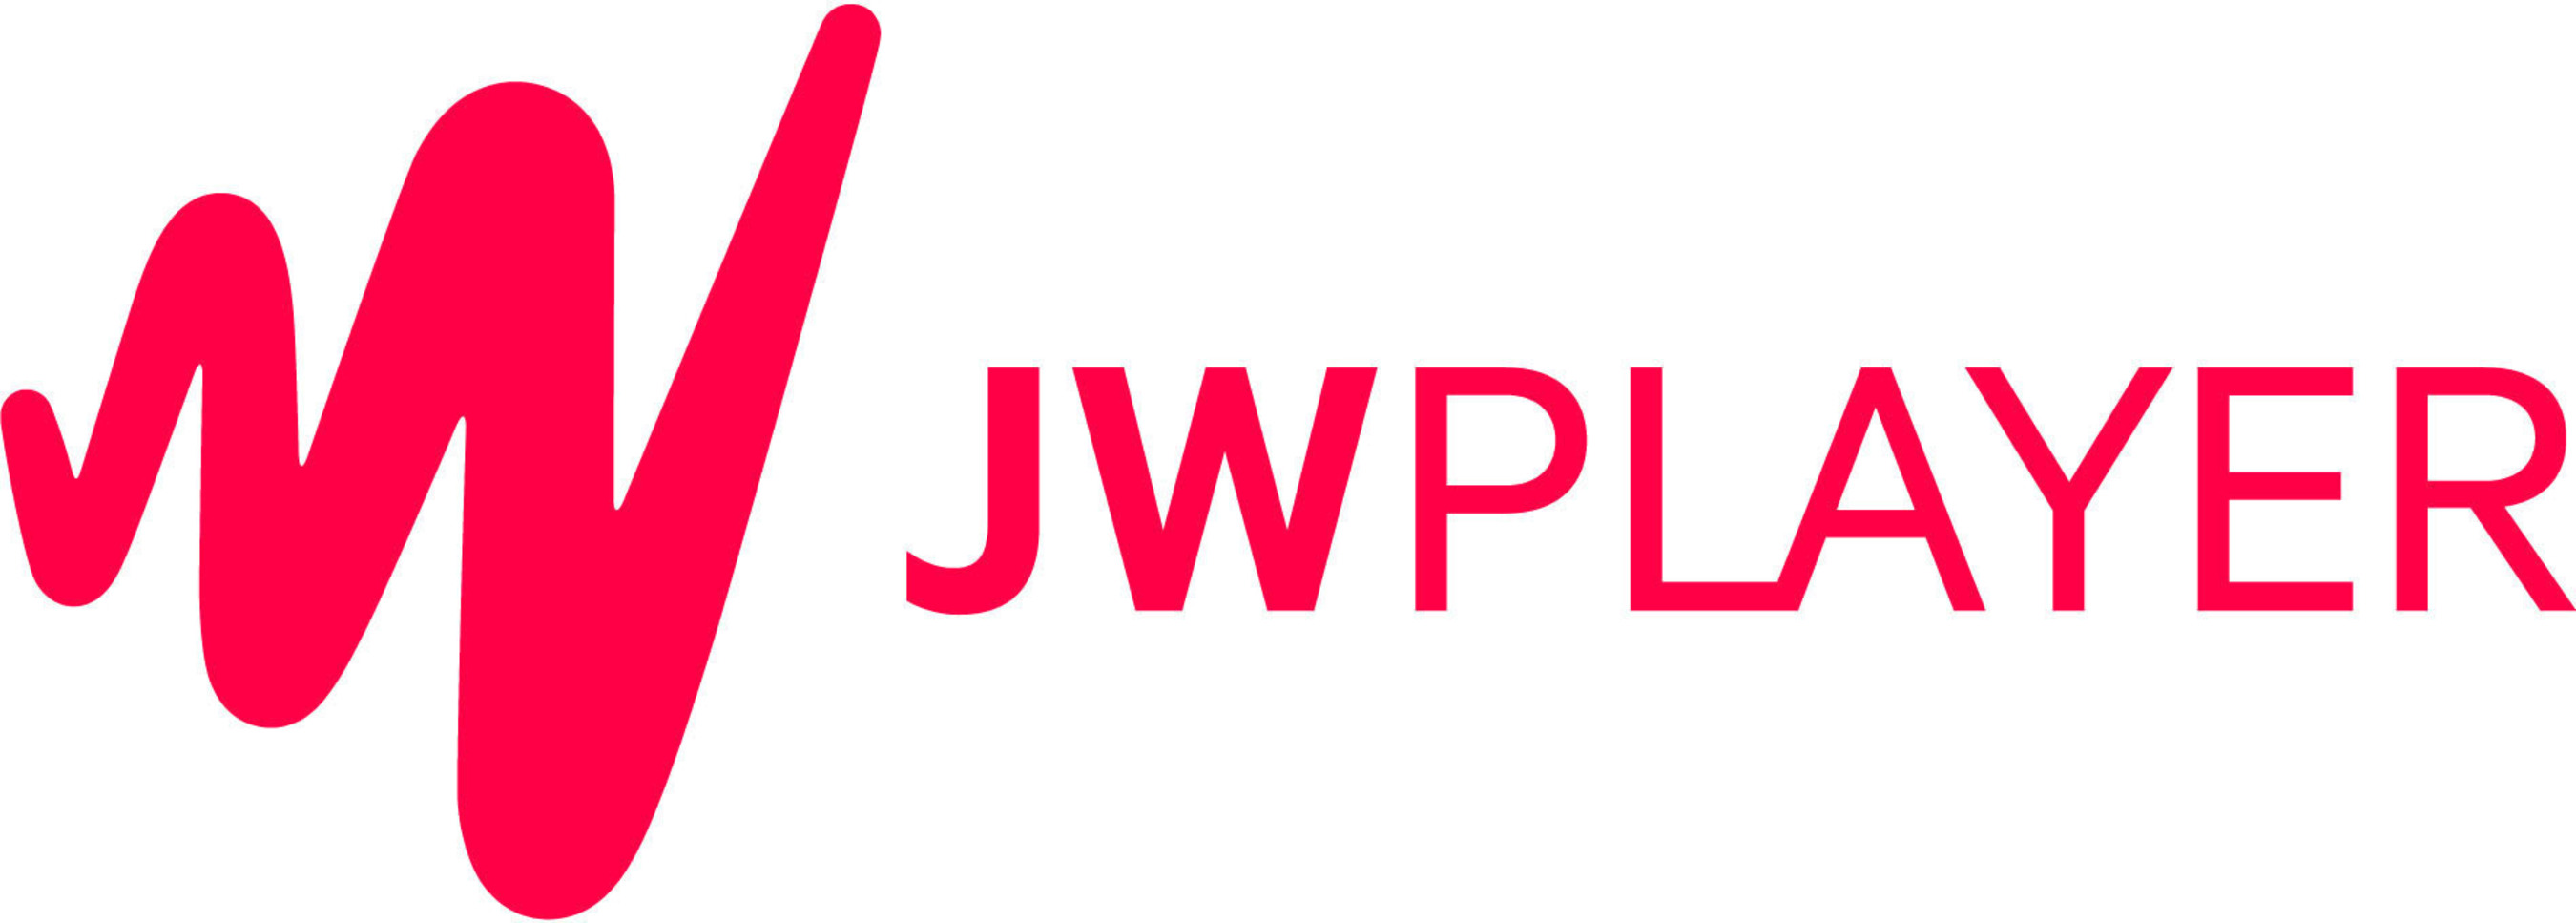 JW Player Expands Mobile Offering with Launch of iOS SDK, Demonstrating Continued Commitment to JW Everywhere Philosophy